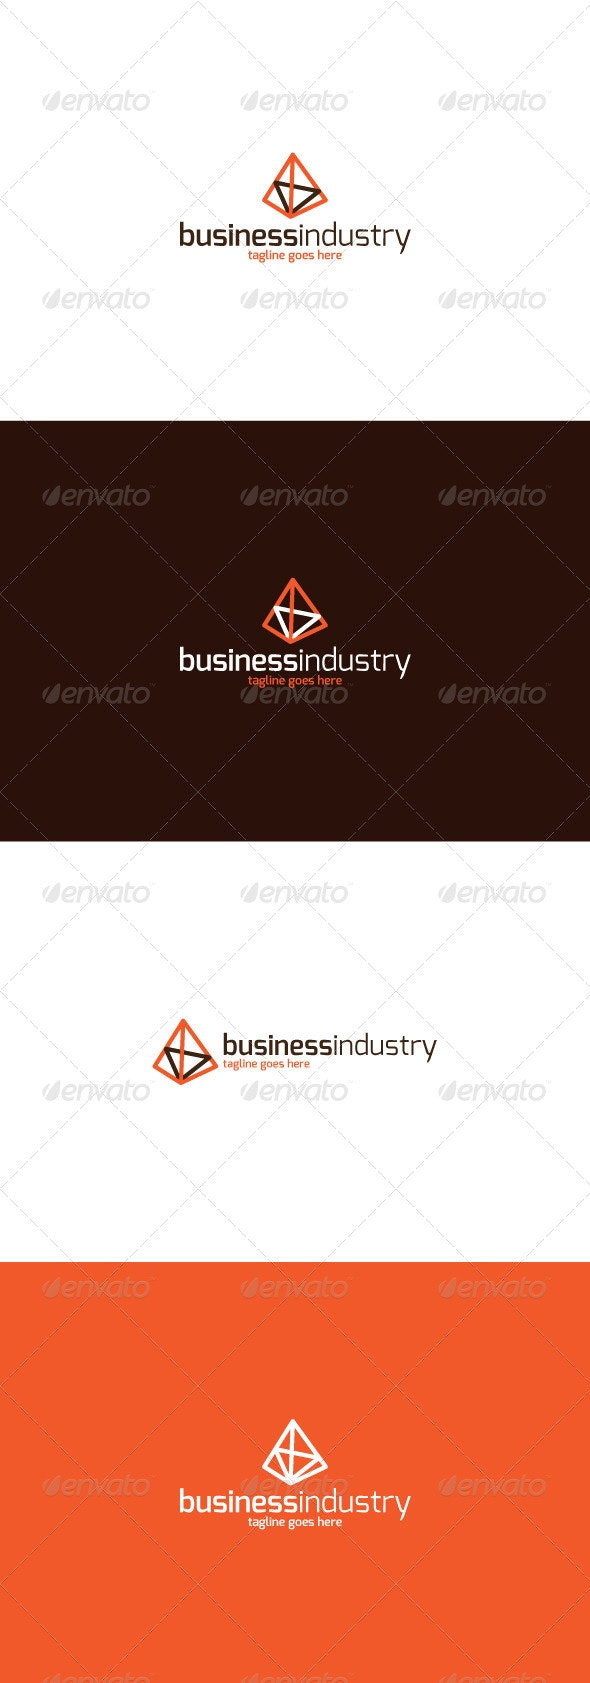 Business Industry Logo  - Vector Abstract